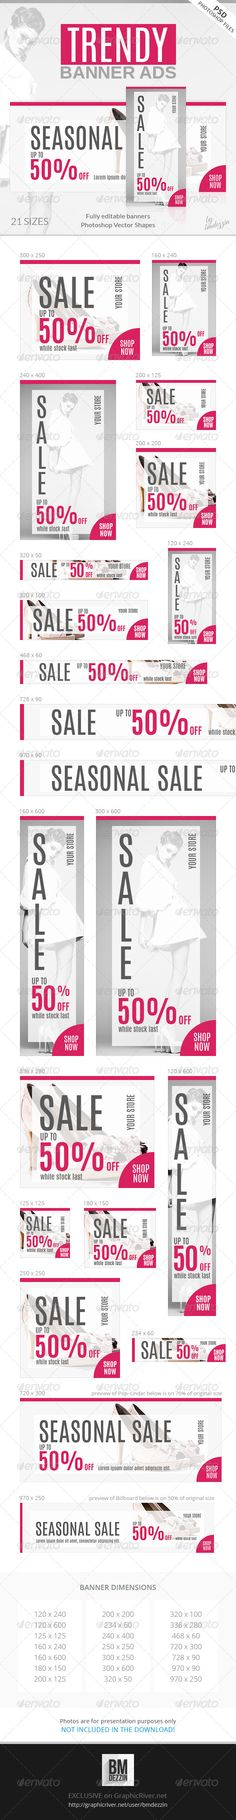 Trendy Web Banner Ads Template PSD | Buy and Download: http://graphicriver.net/item/trendy-banner-ads/7828470?WT.ac=category_thumb&WT.z_author=bmdezzin&ref=ksioks